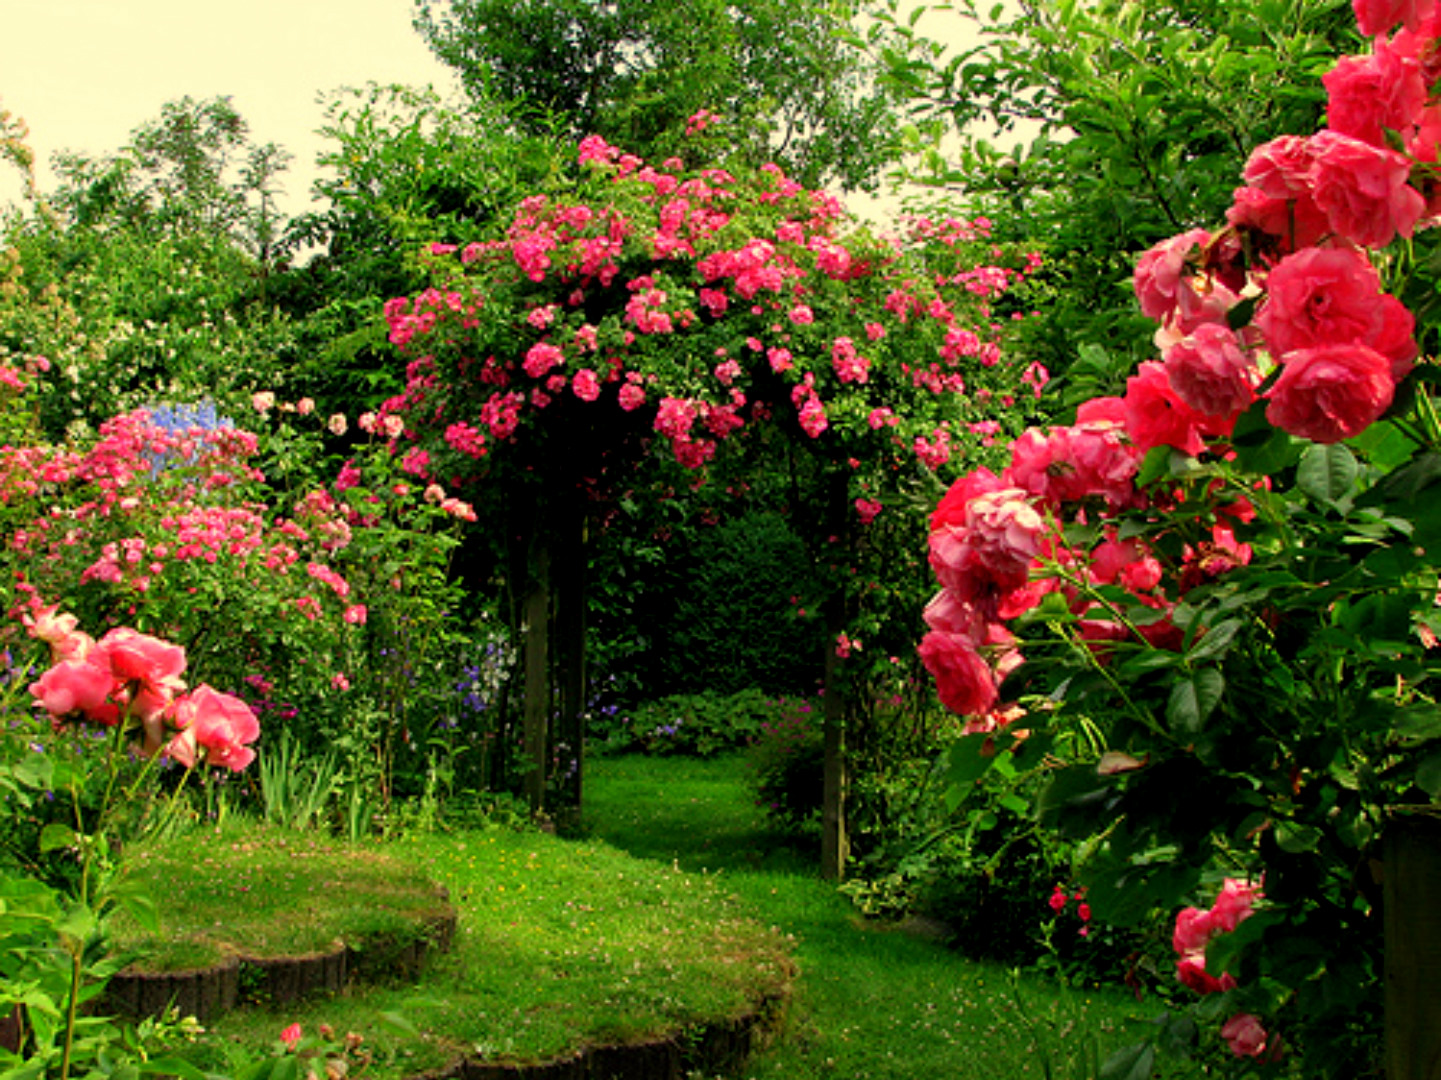 Rose flower garden flower hd wallpapers images for Wallpaper home and garden